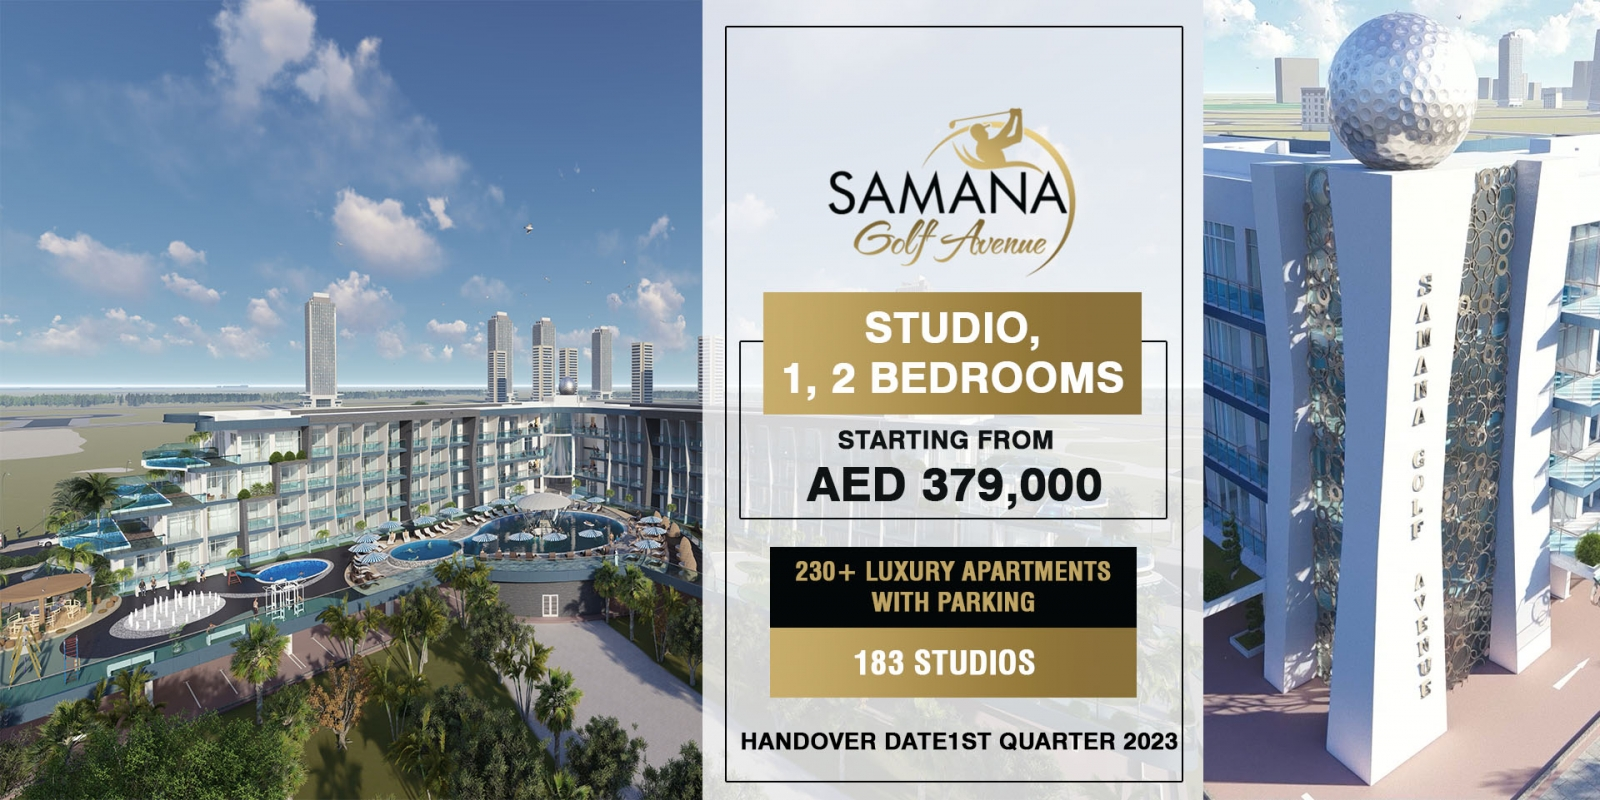 Samana Golf Avenue Dubai Studio city